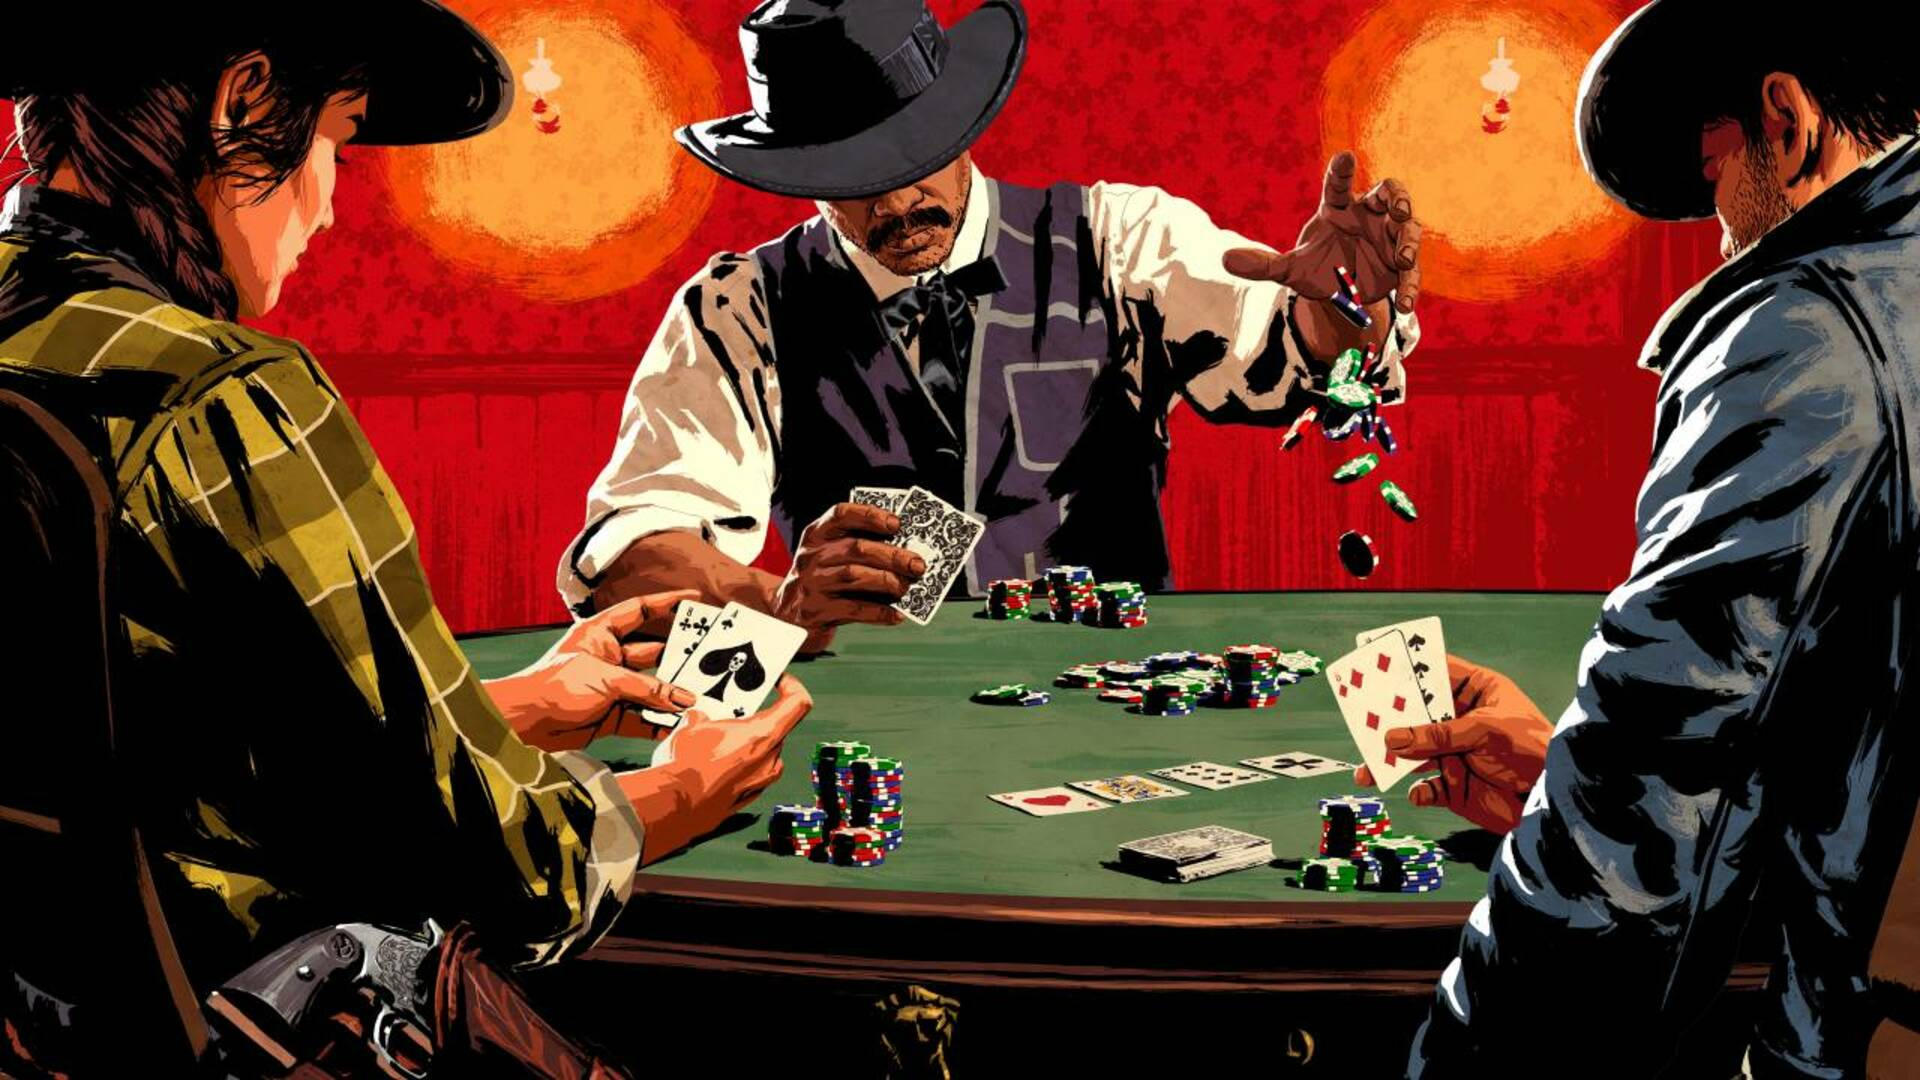 Red Dead Online Update Adds More Missions, Less Griefing, And Poker